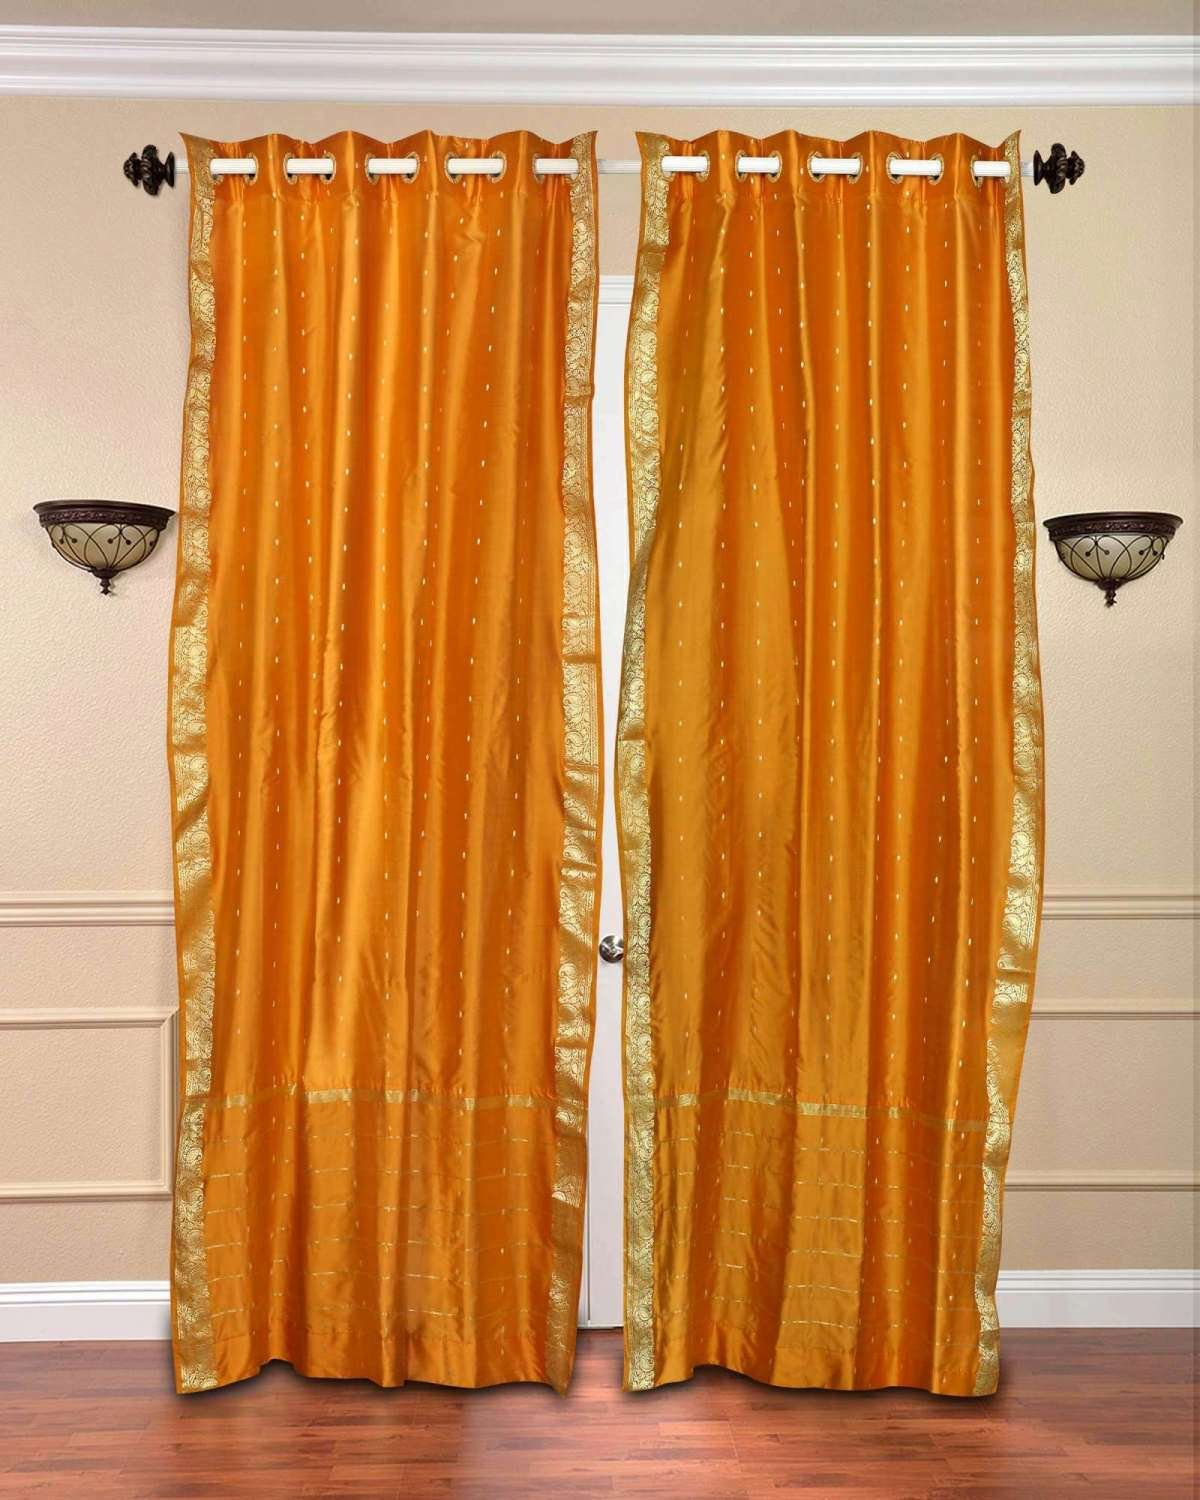 Indian Selections Lined-Mustard Ring Top Sheer Sari Cafe Curtain/Drape - 43W x 24L - Piece